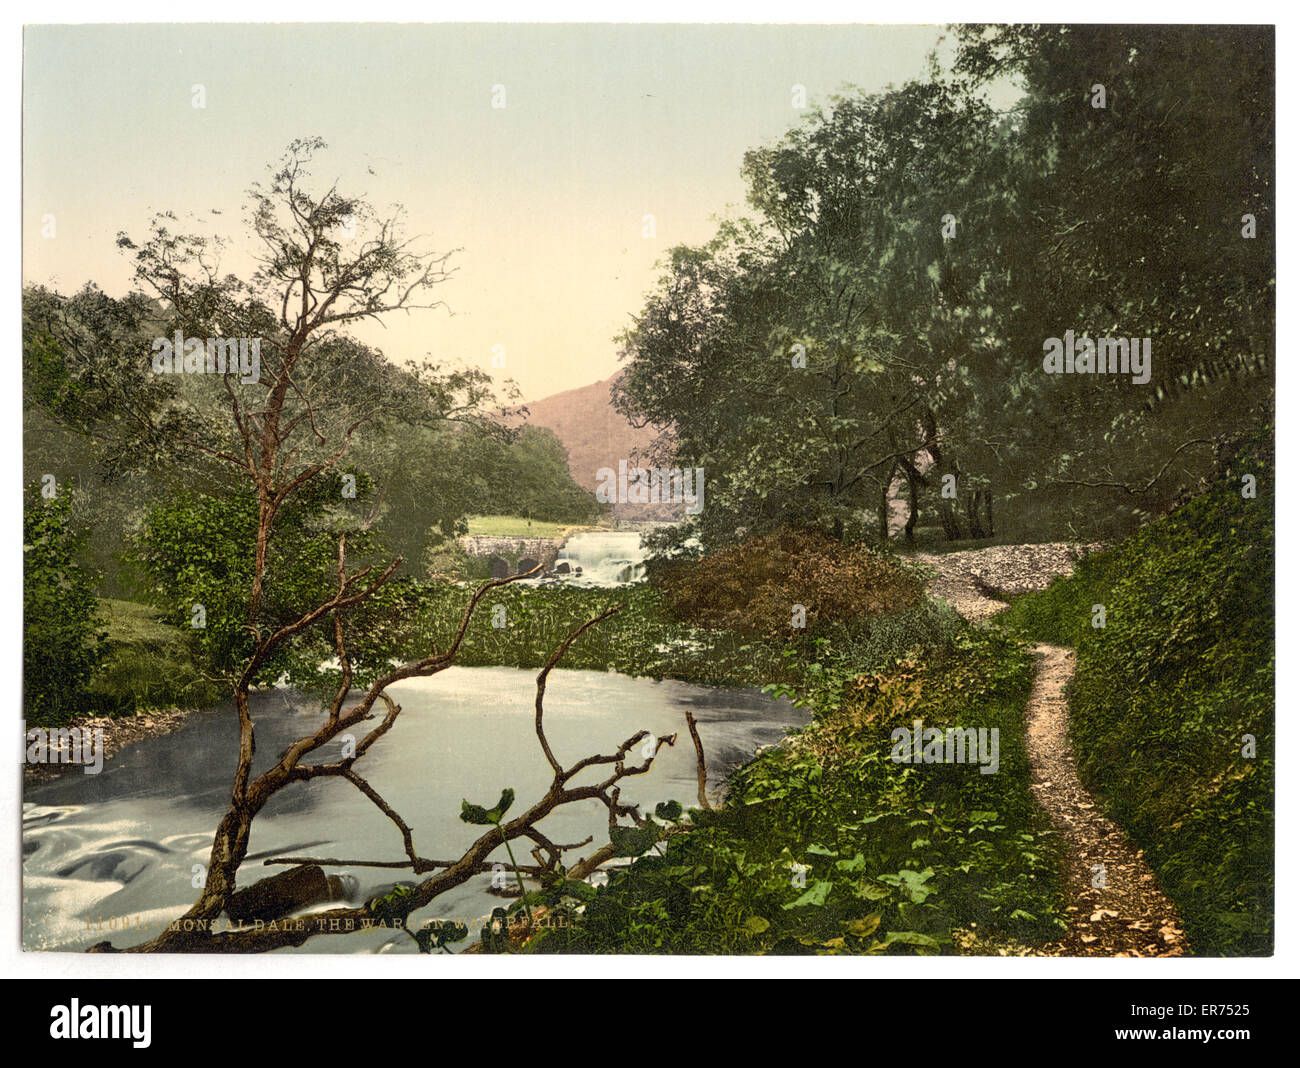 Monsal Dale, the Warren Waterfall, Derbyshire, England. Date between ca. 1890 and ca. 1900. - Stock Image